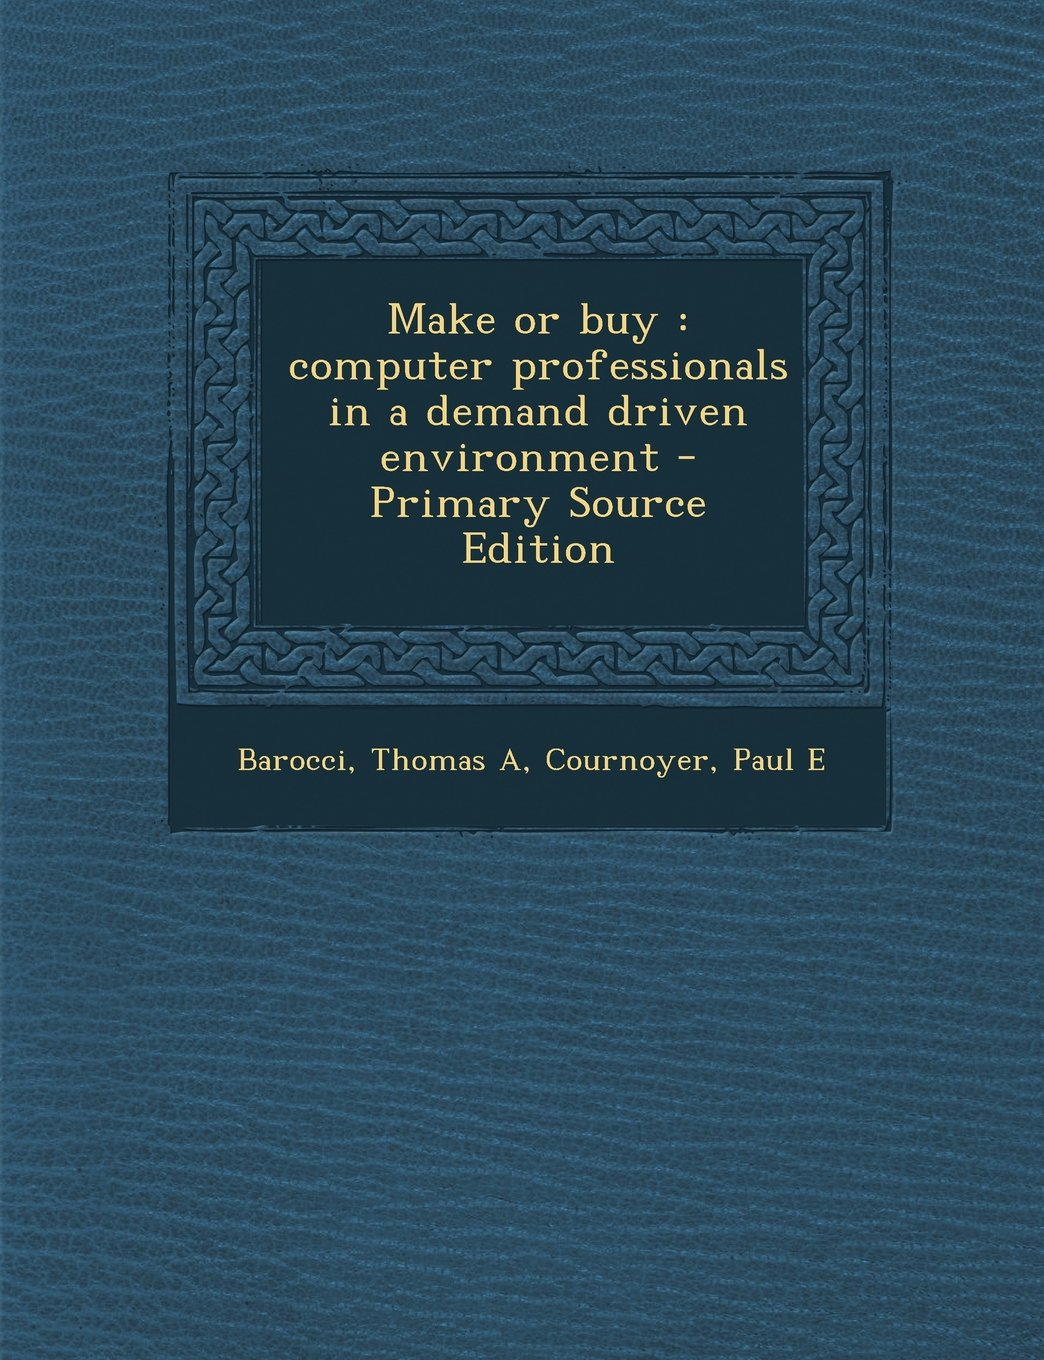 Download Make or buy: computer professionals in a demand driven environment PDF